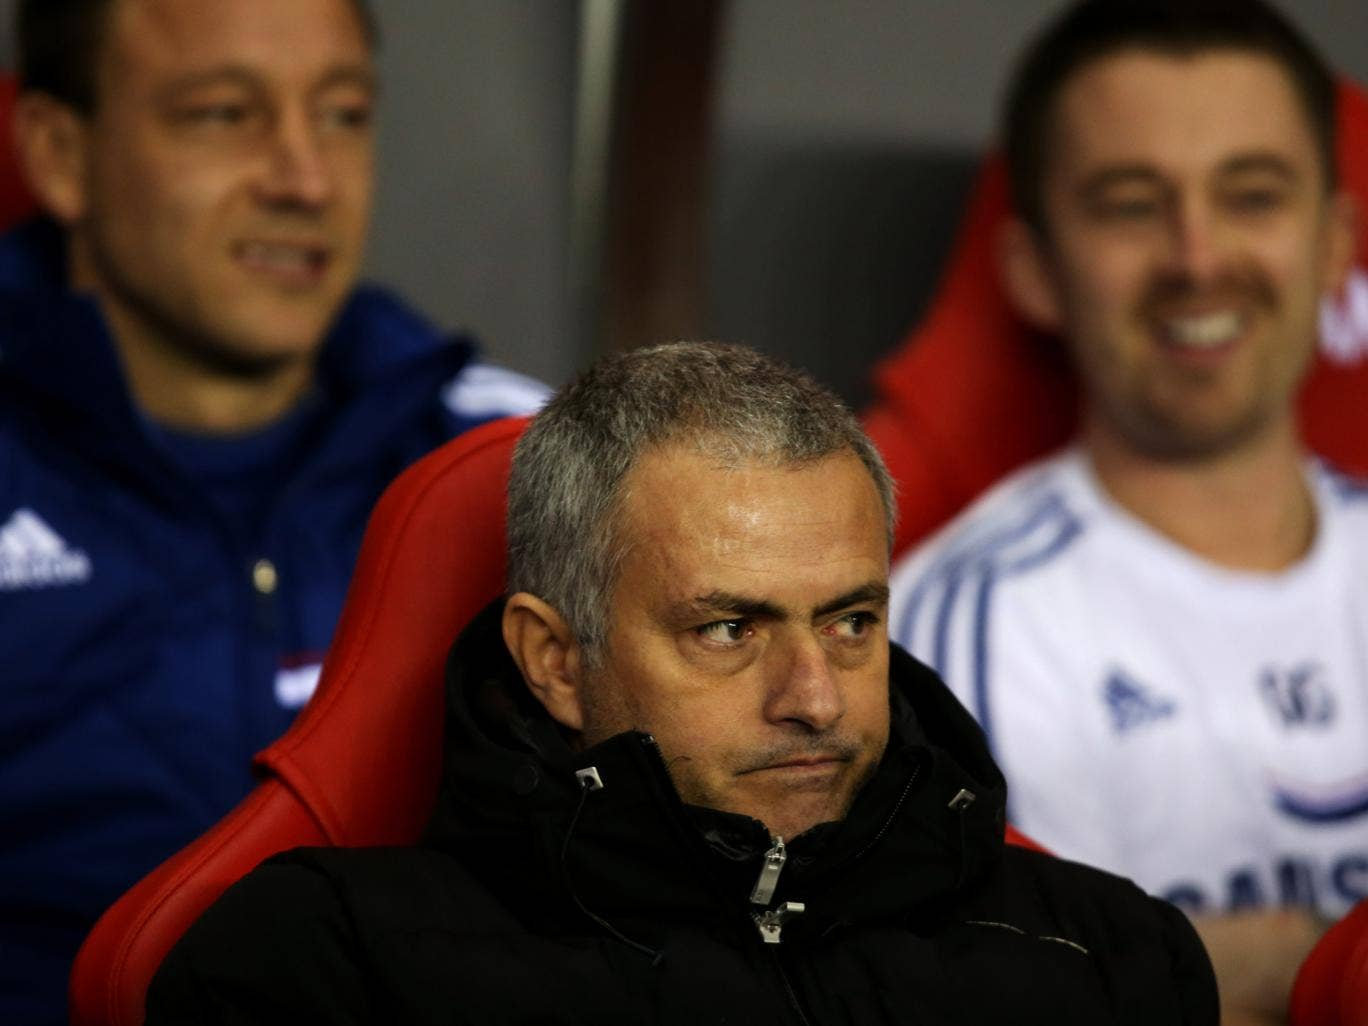 Chelsea manager Jose Mourinho has claimed that the best sides in England must secure a top four place before making a title charge